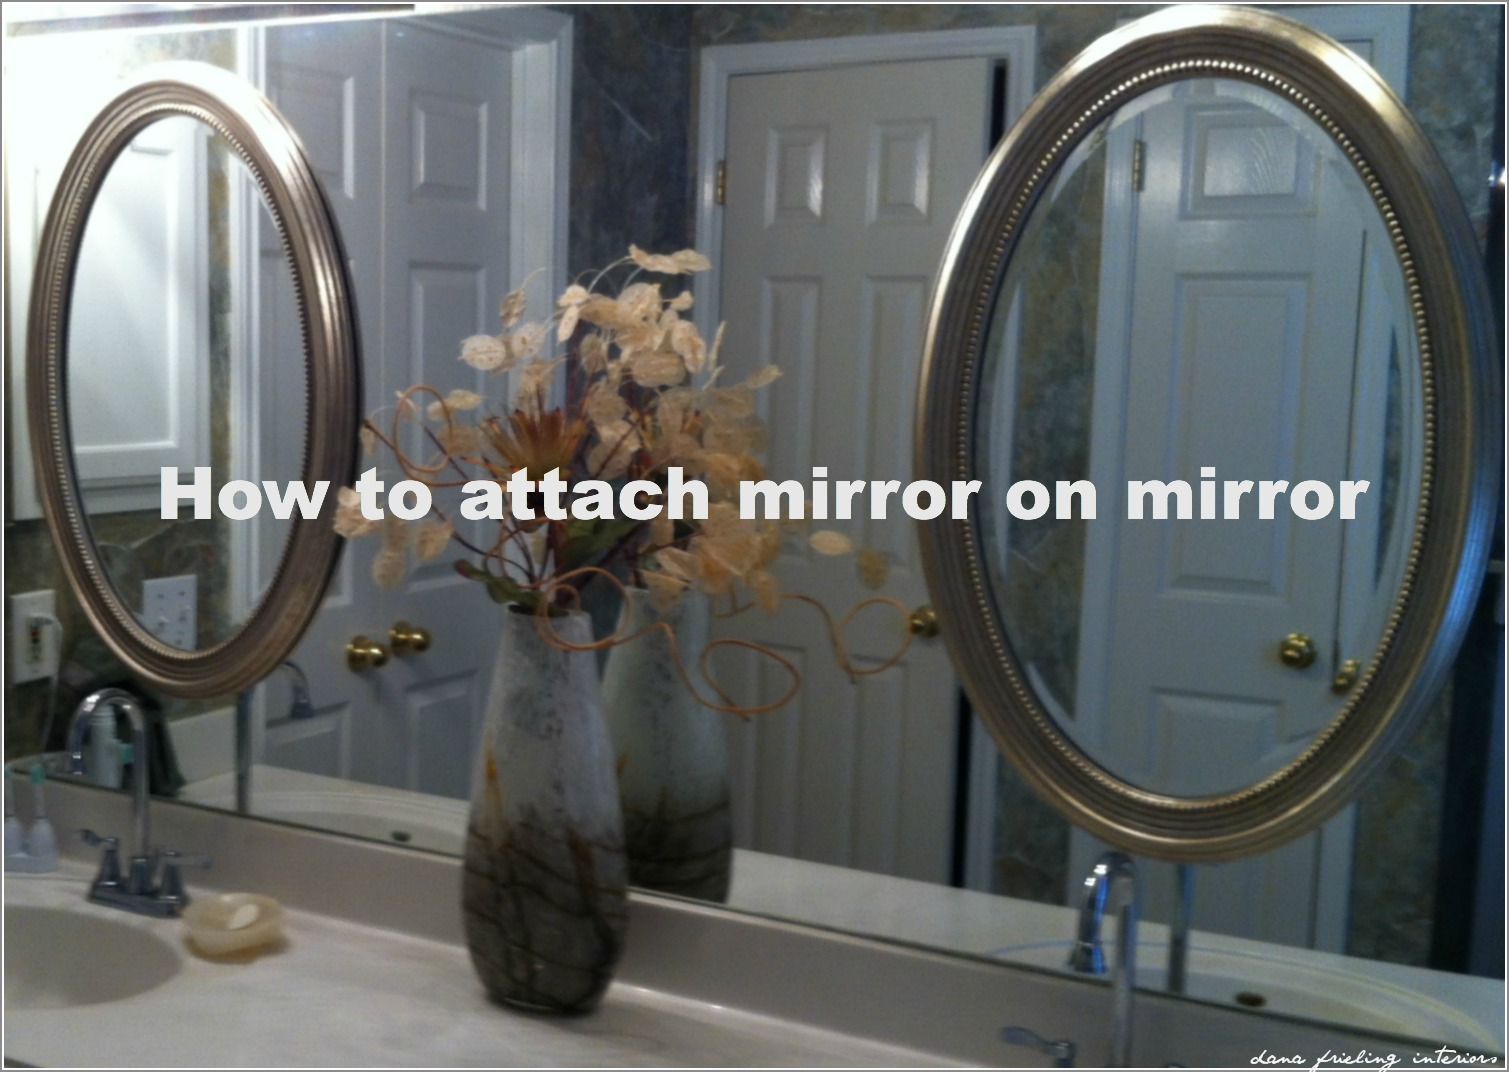 How to glue a bathroom mirror to the wall - Monday March 11 2013